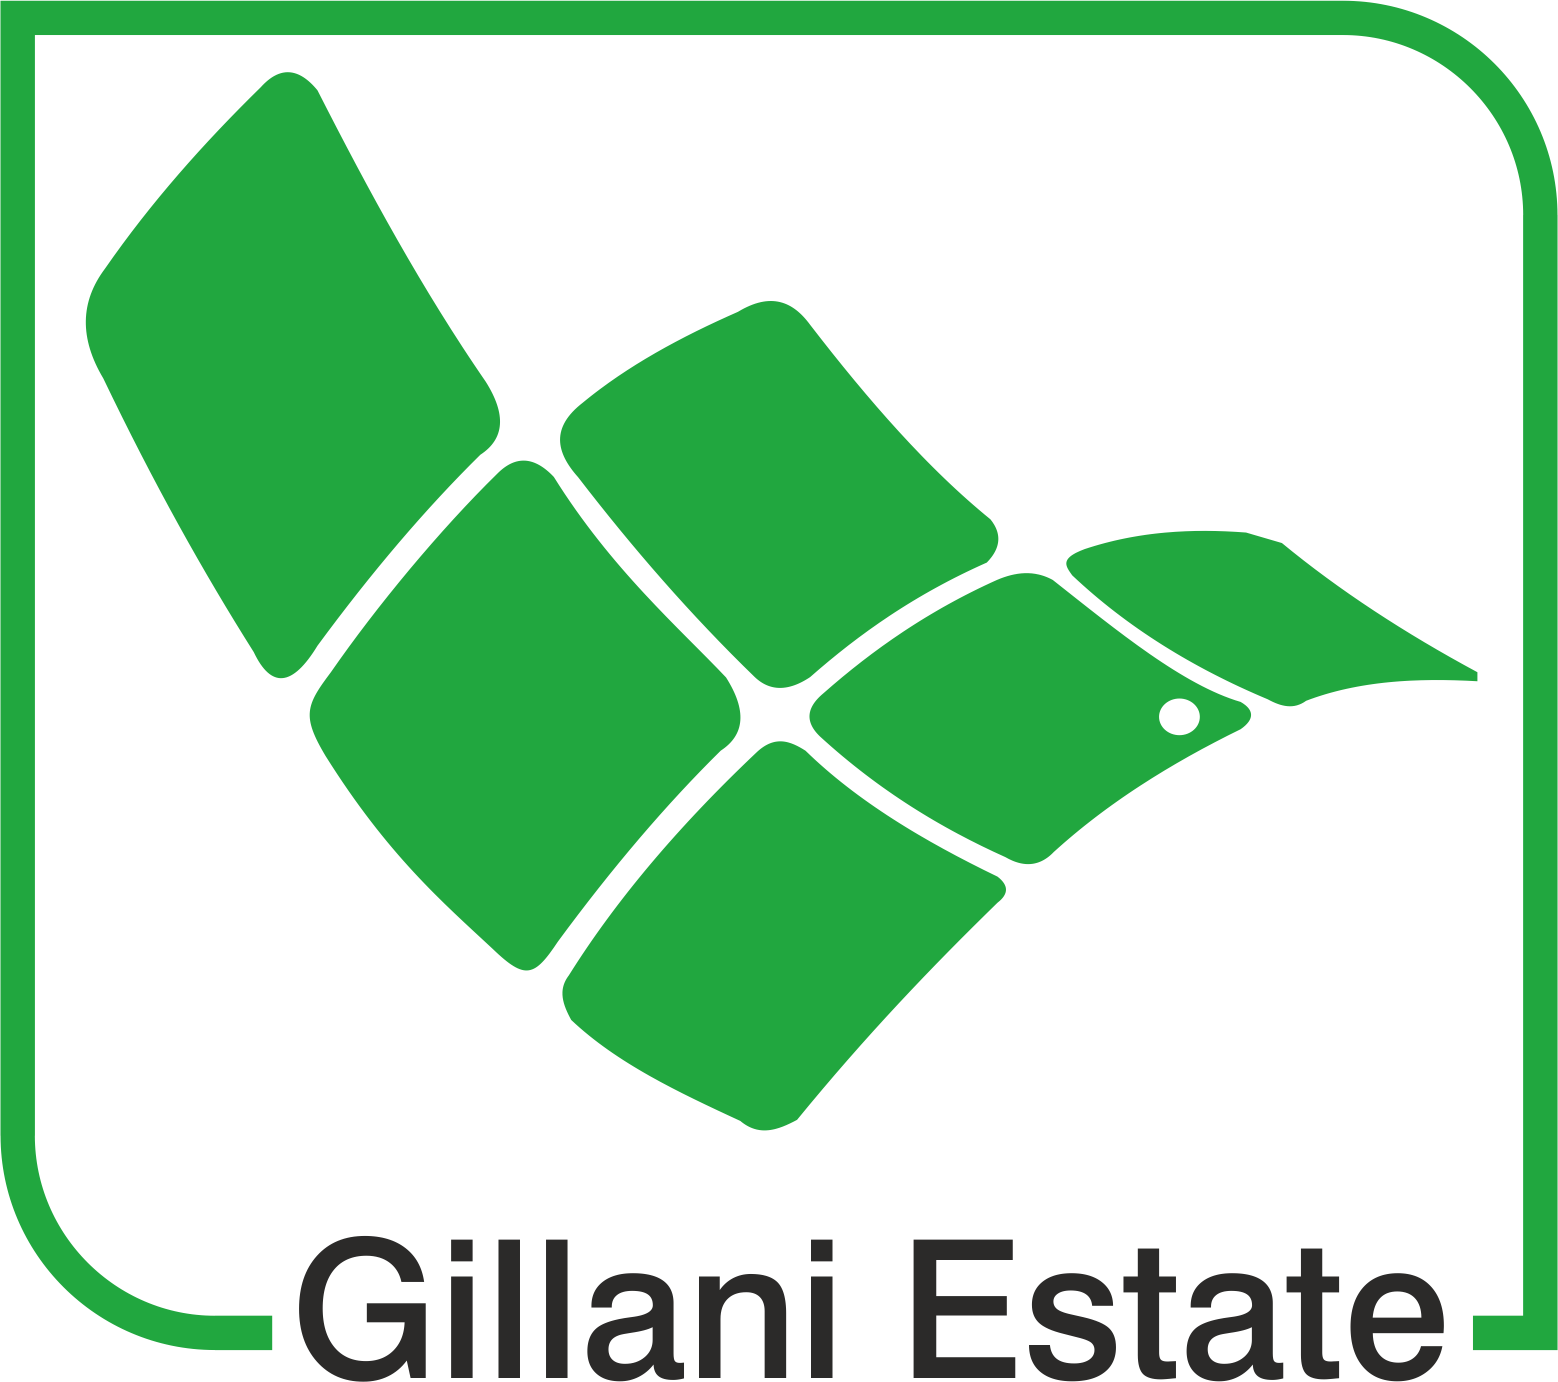 Gillani Estate & Builders Islamabad